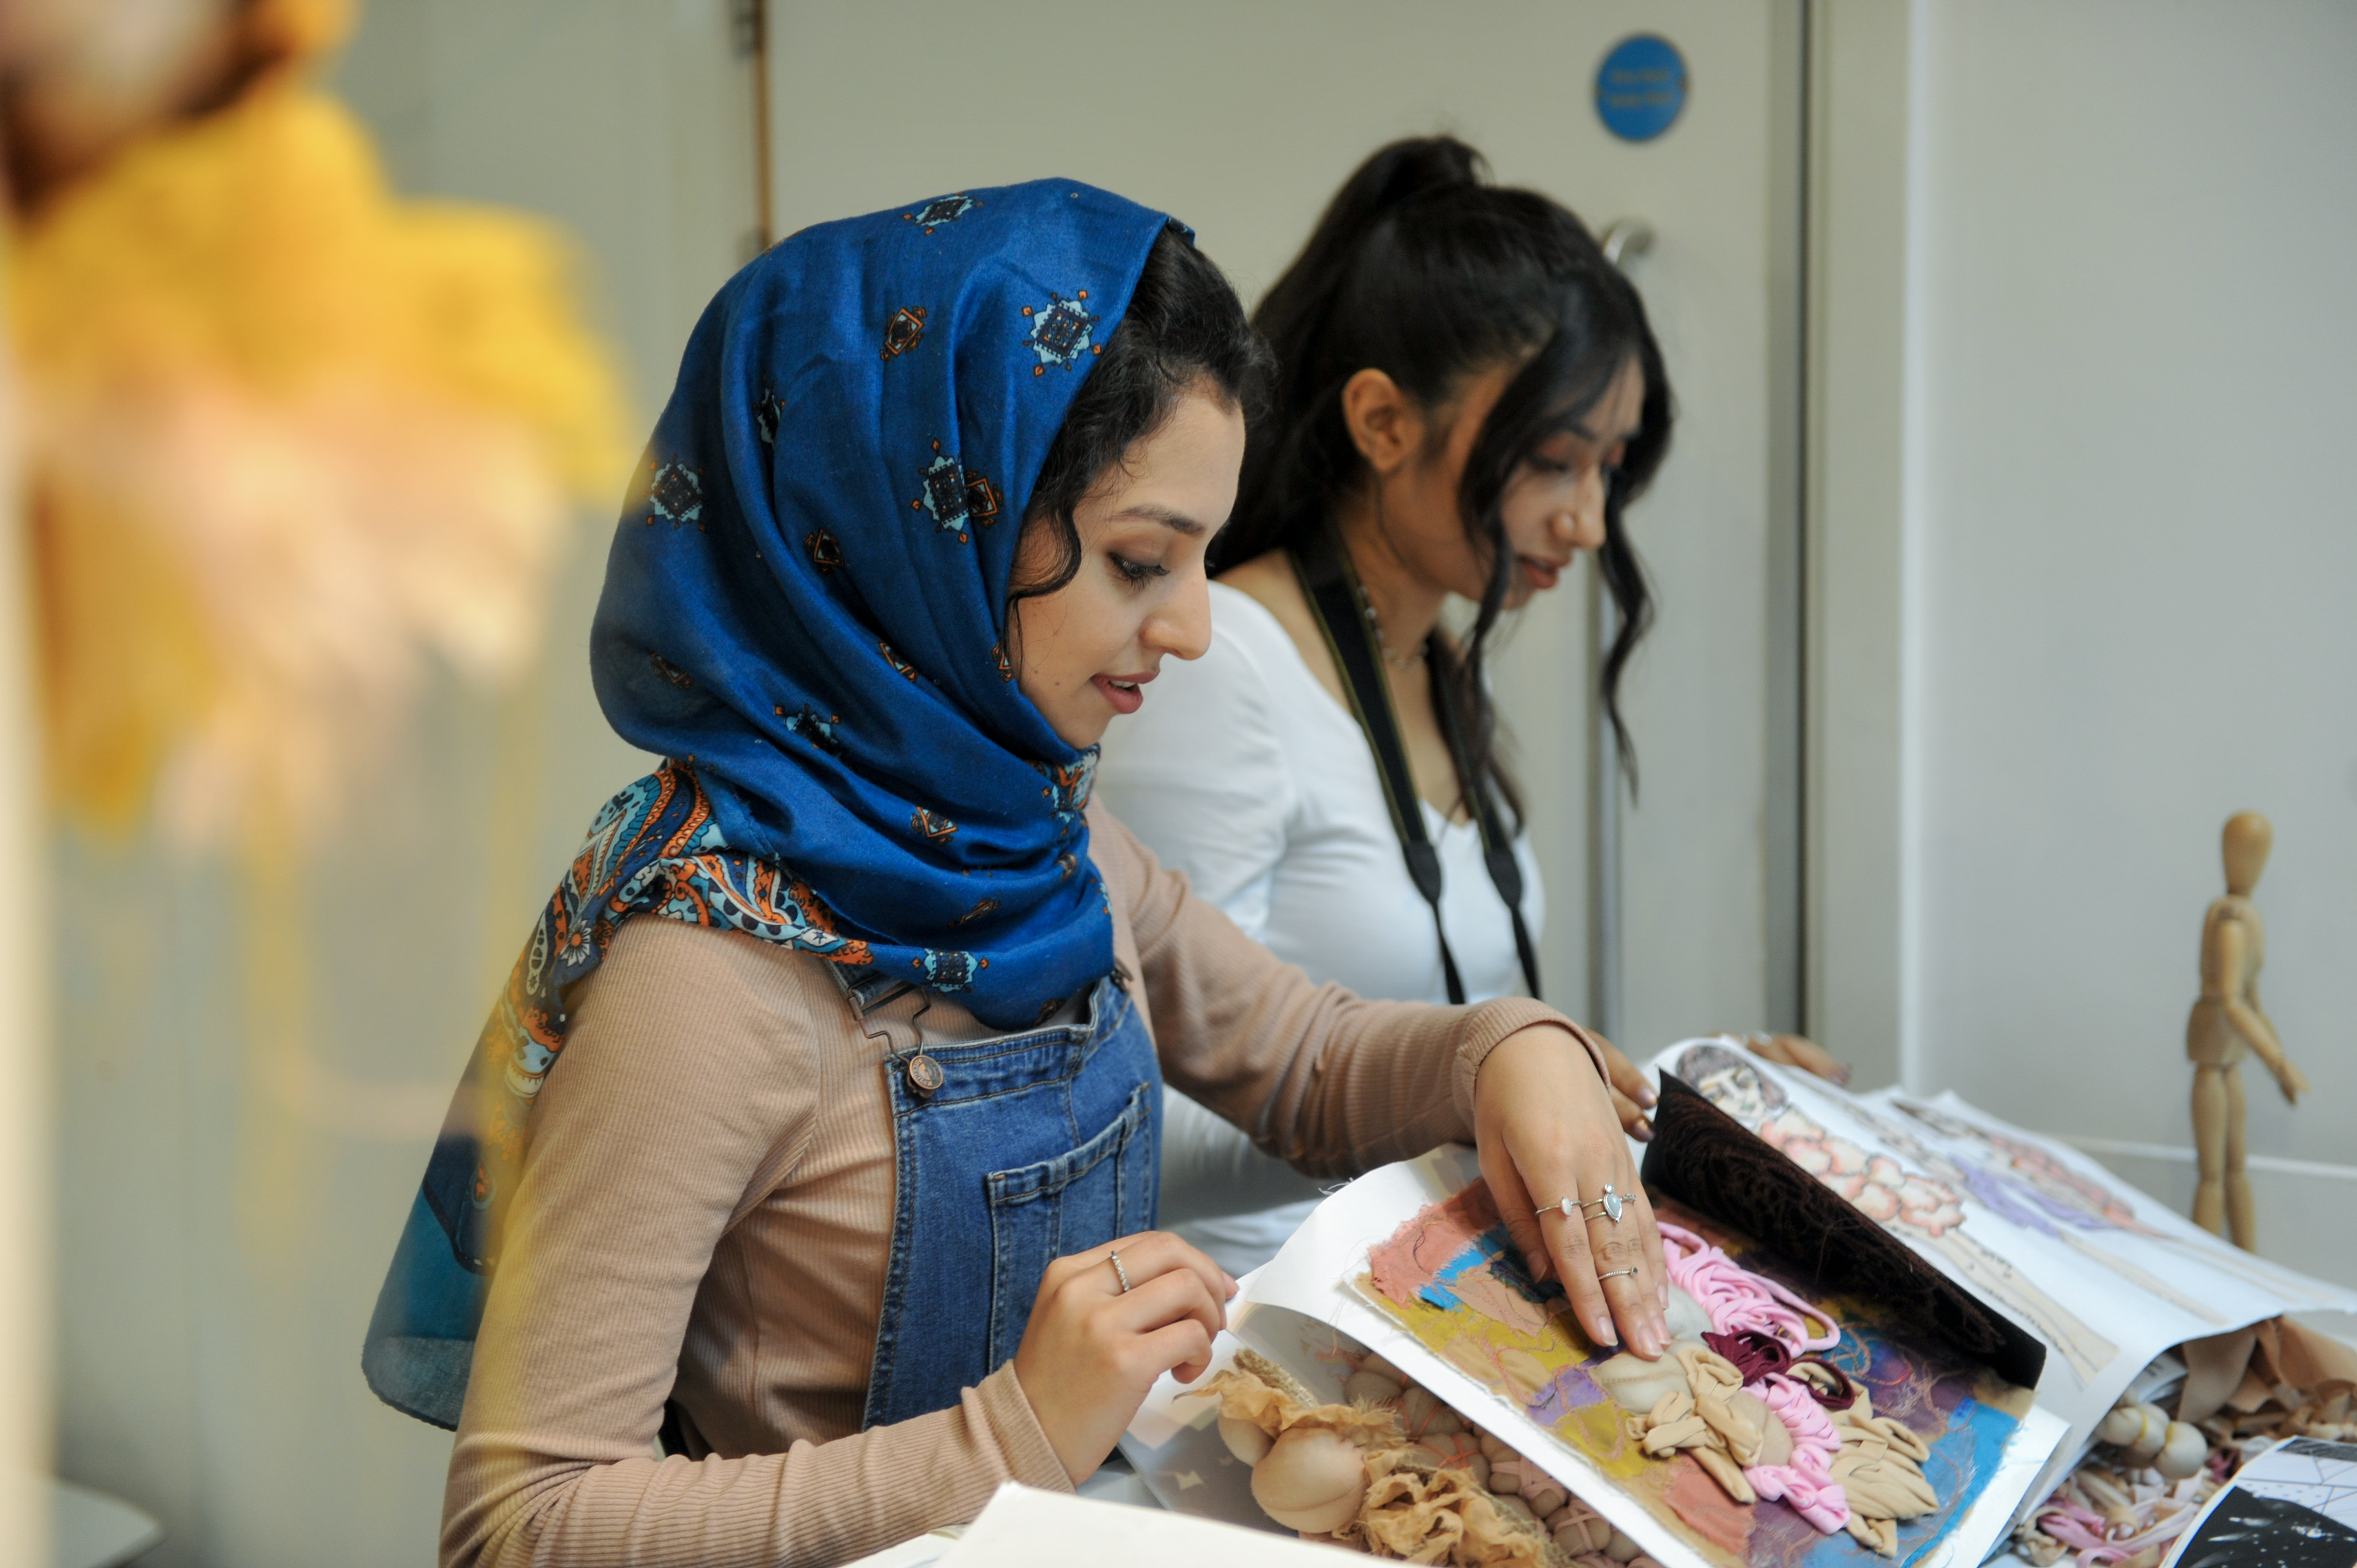 Two students looking through sketchbooks and samples of work